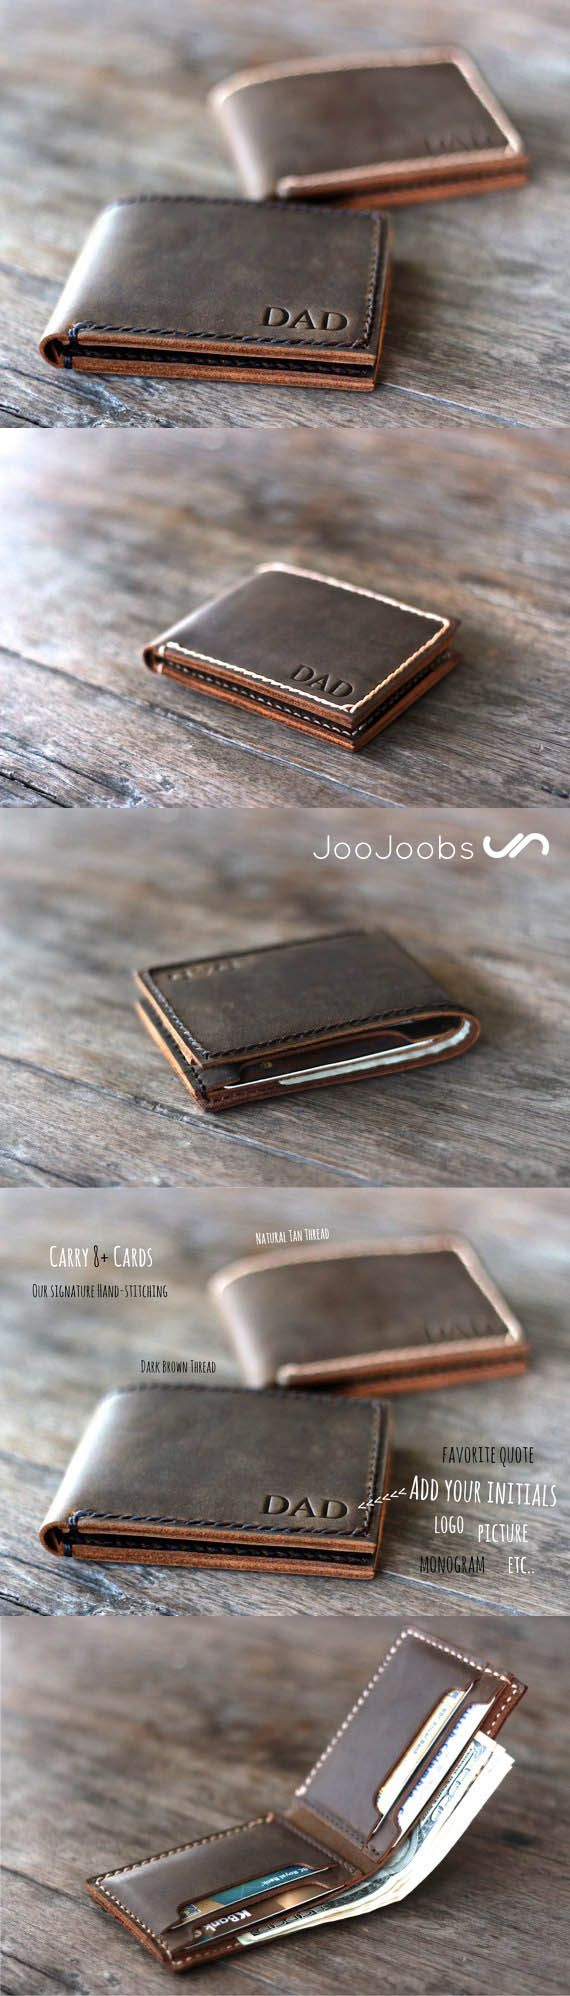 Need an original, unique gift?  Come check out JooJoobs' handmade leather wallet shop, the number one wallet shop on Etsy 4 years straight!